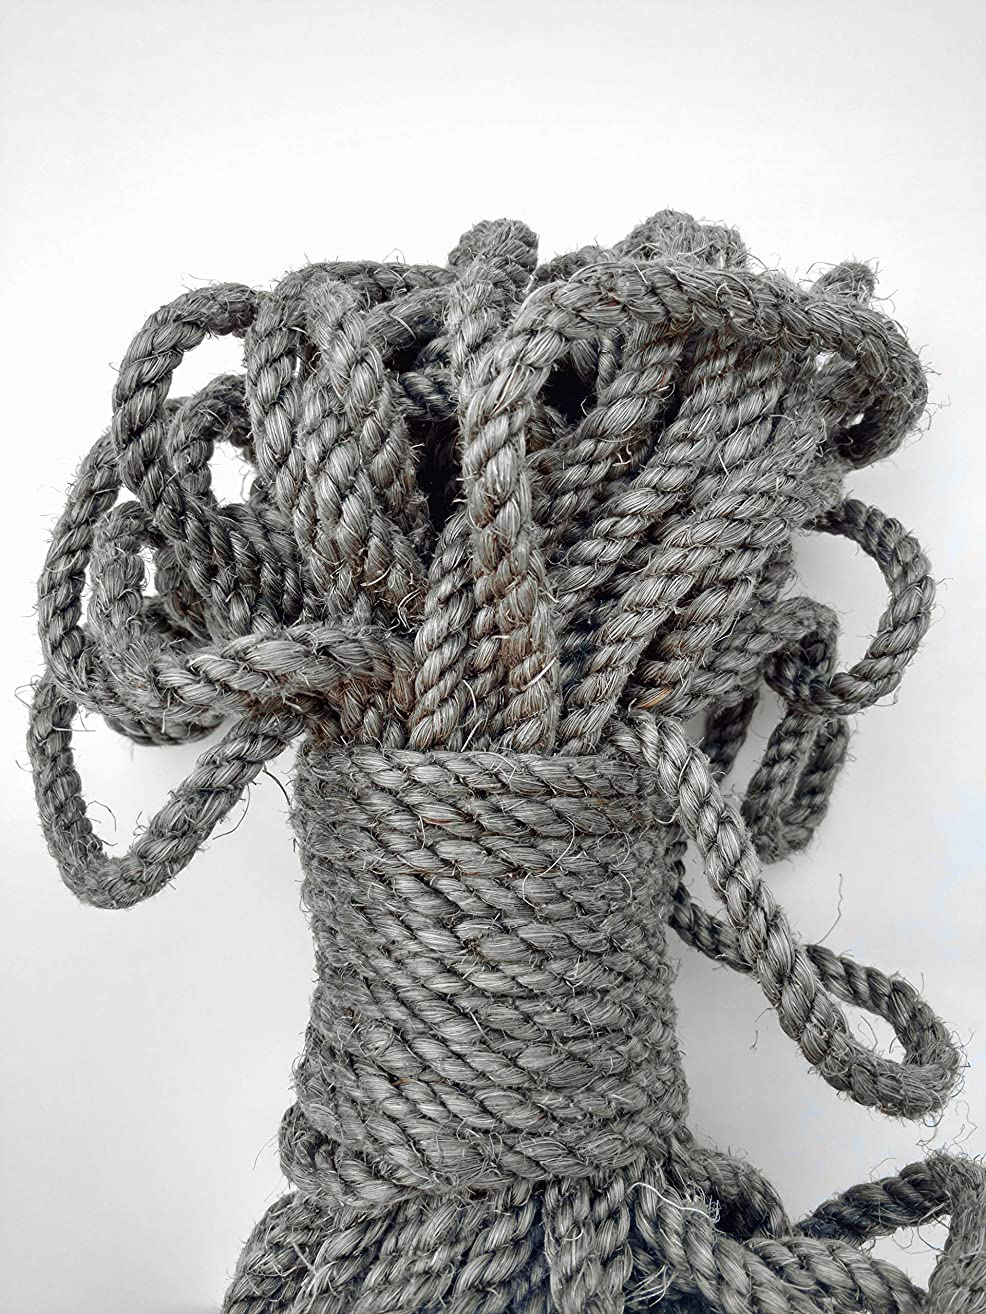 Gray Sisal Rope, Silver Sisal Rope, Dyed Pewter Color: 1/4